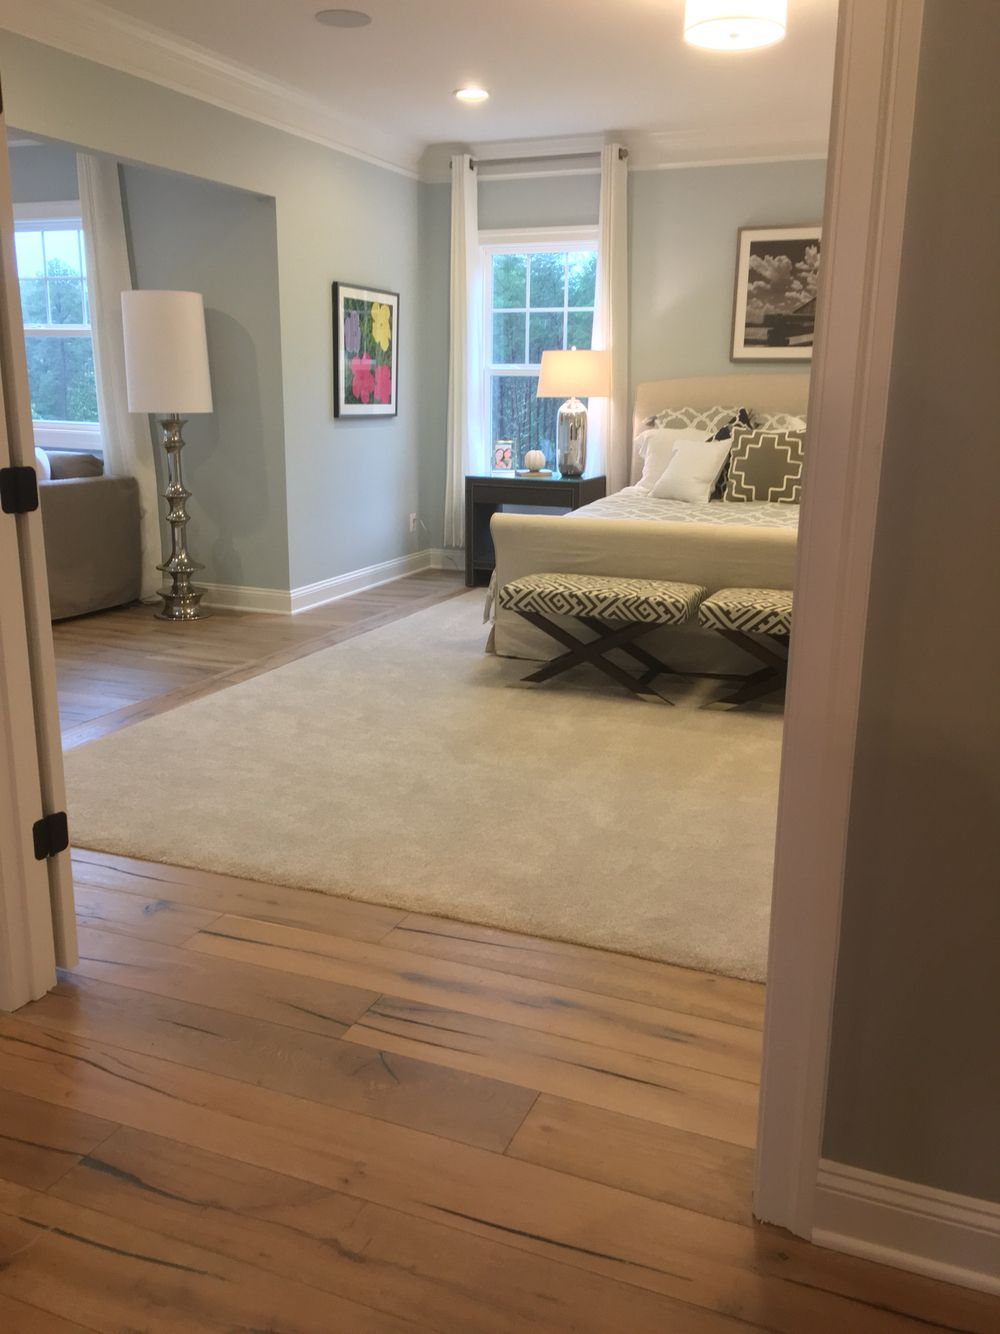 Carpet Inlay In Master Bedroom Bedroom Wooden Floor Remodel